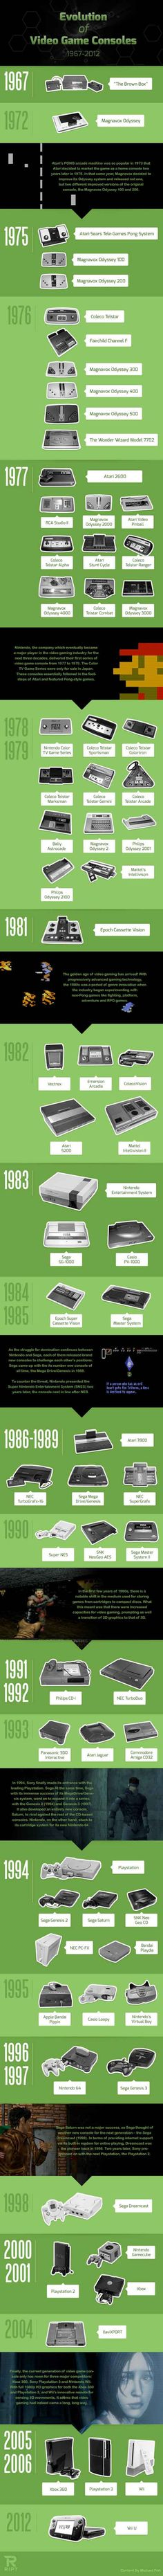 A Visual History of Video Game Consoles